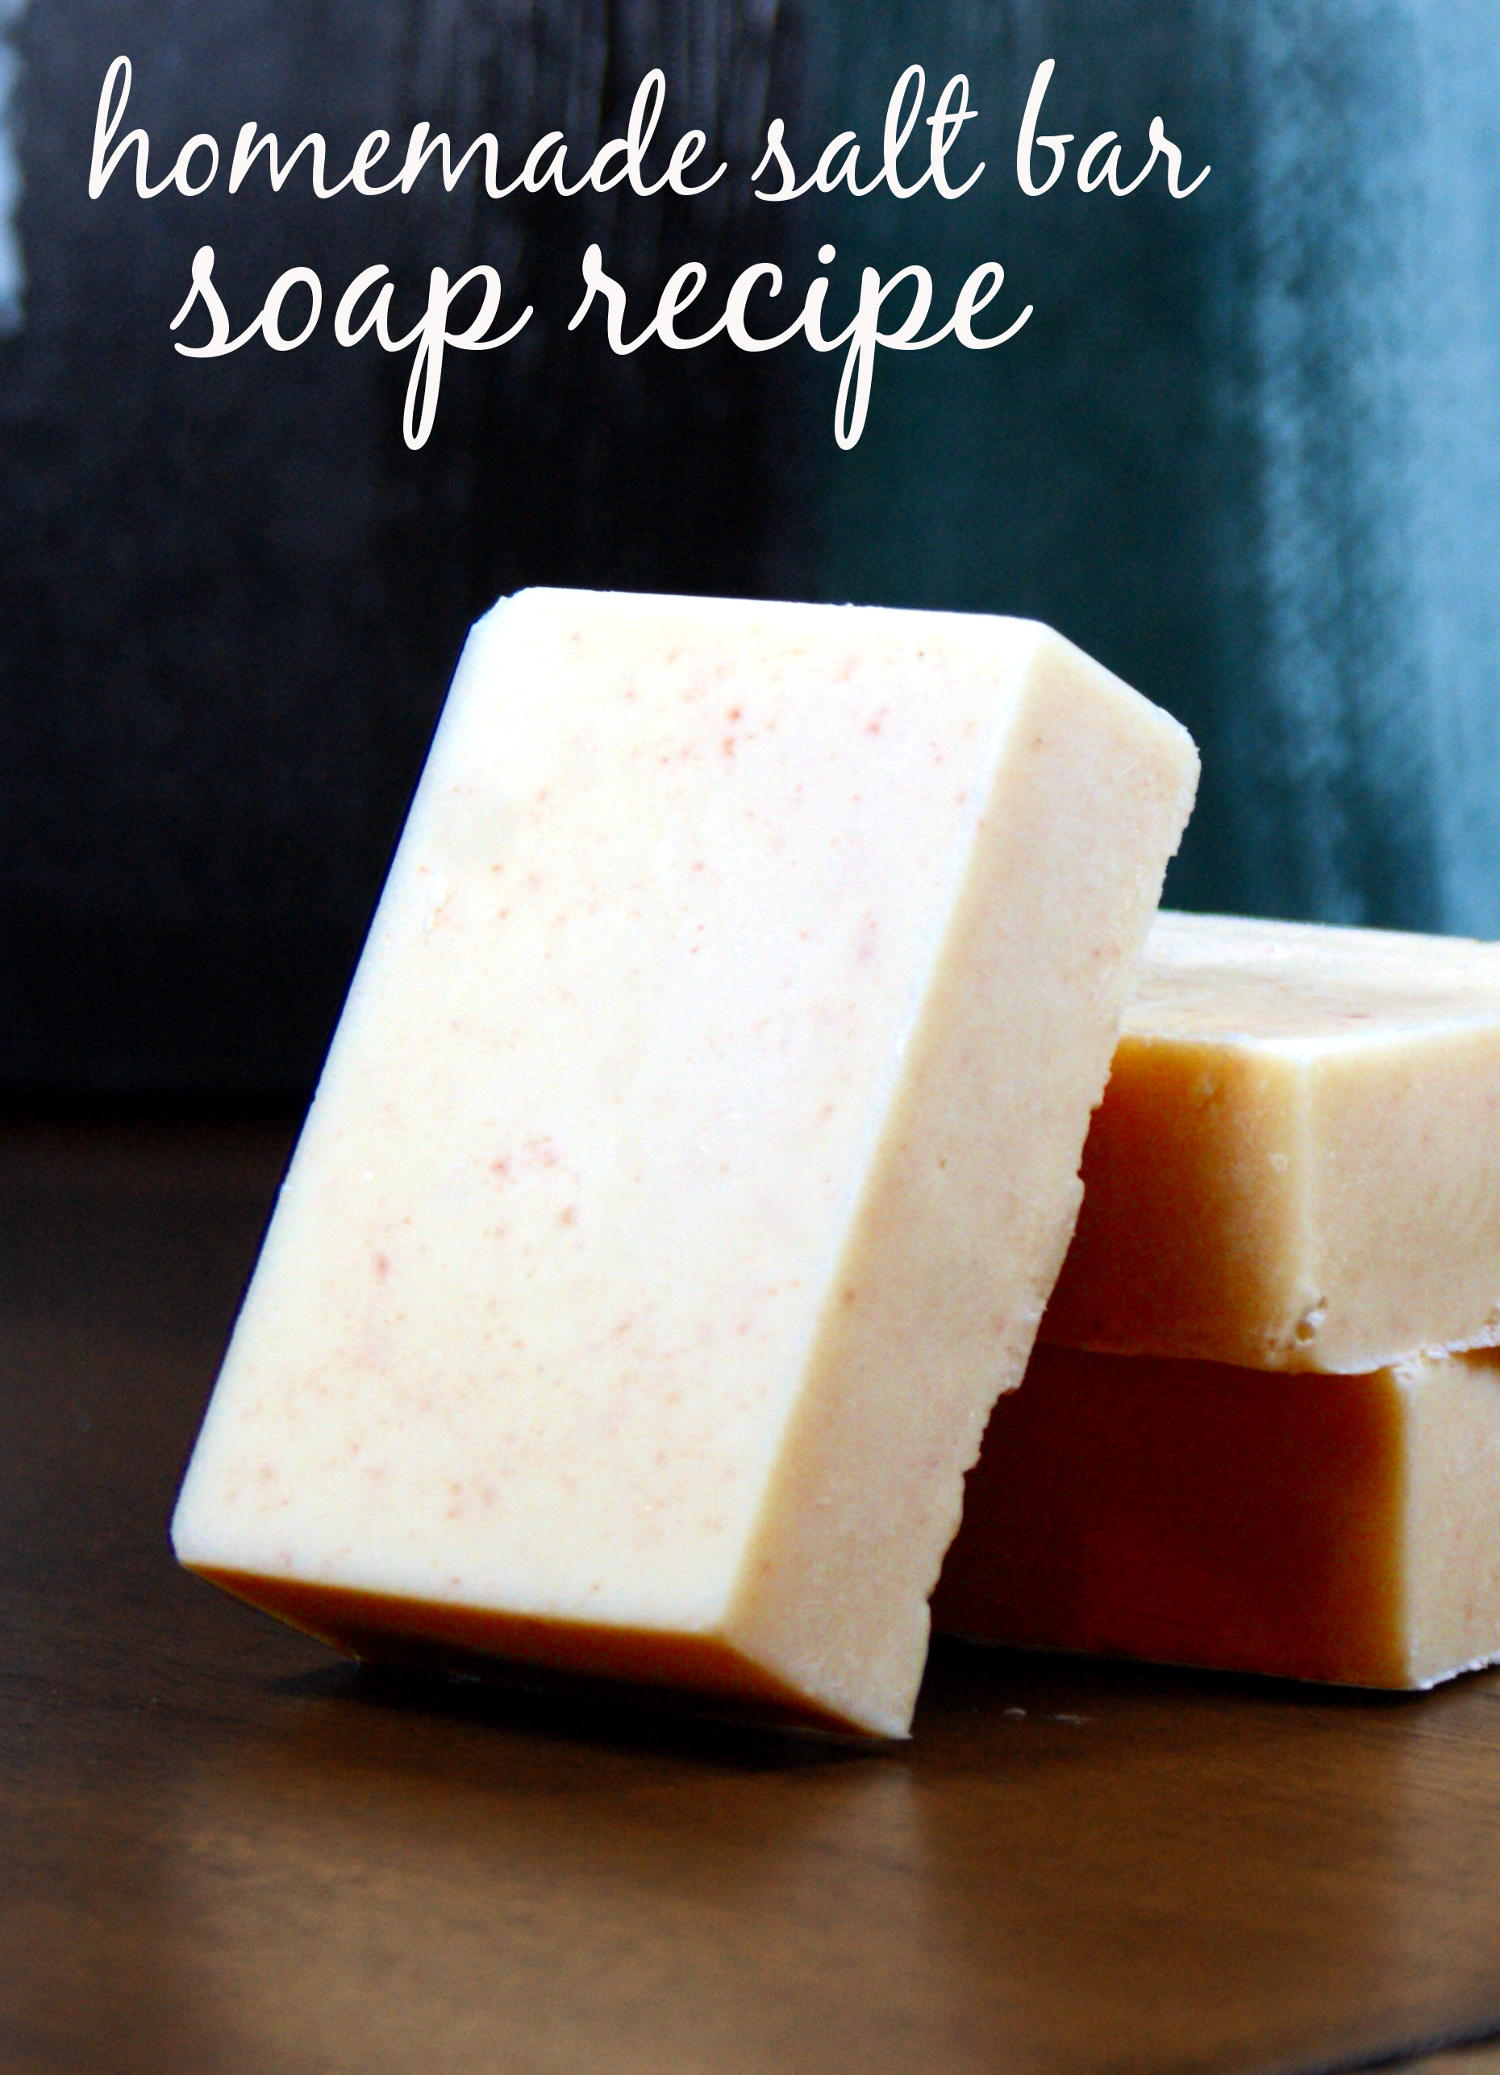 This pink salt and sal butter soap recipe contains skin conditioning sal butter and mineral rich pink Himalayan salt to detox, promote healing and nourish skin.